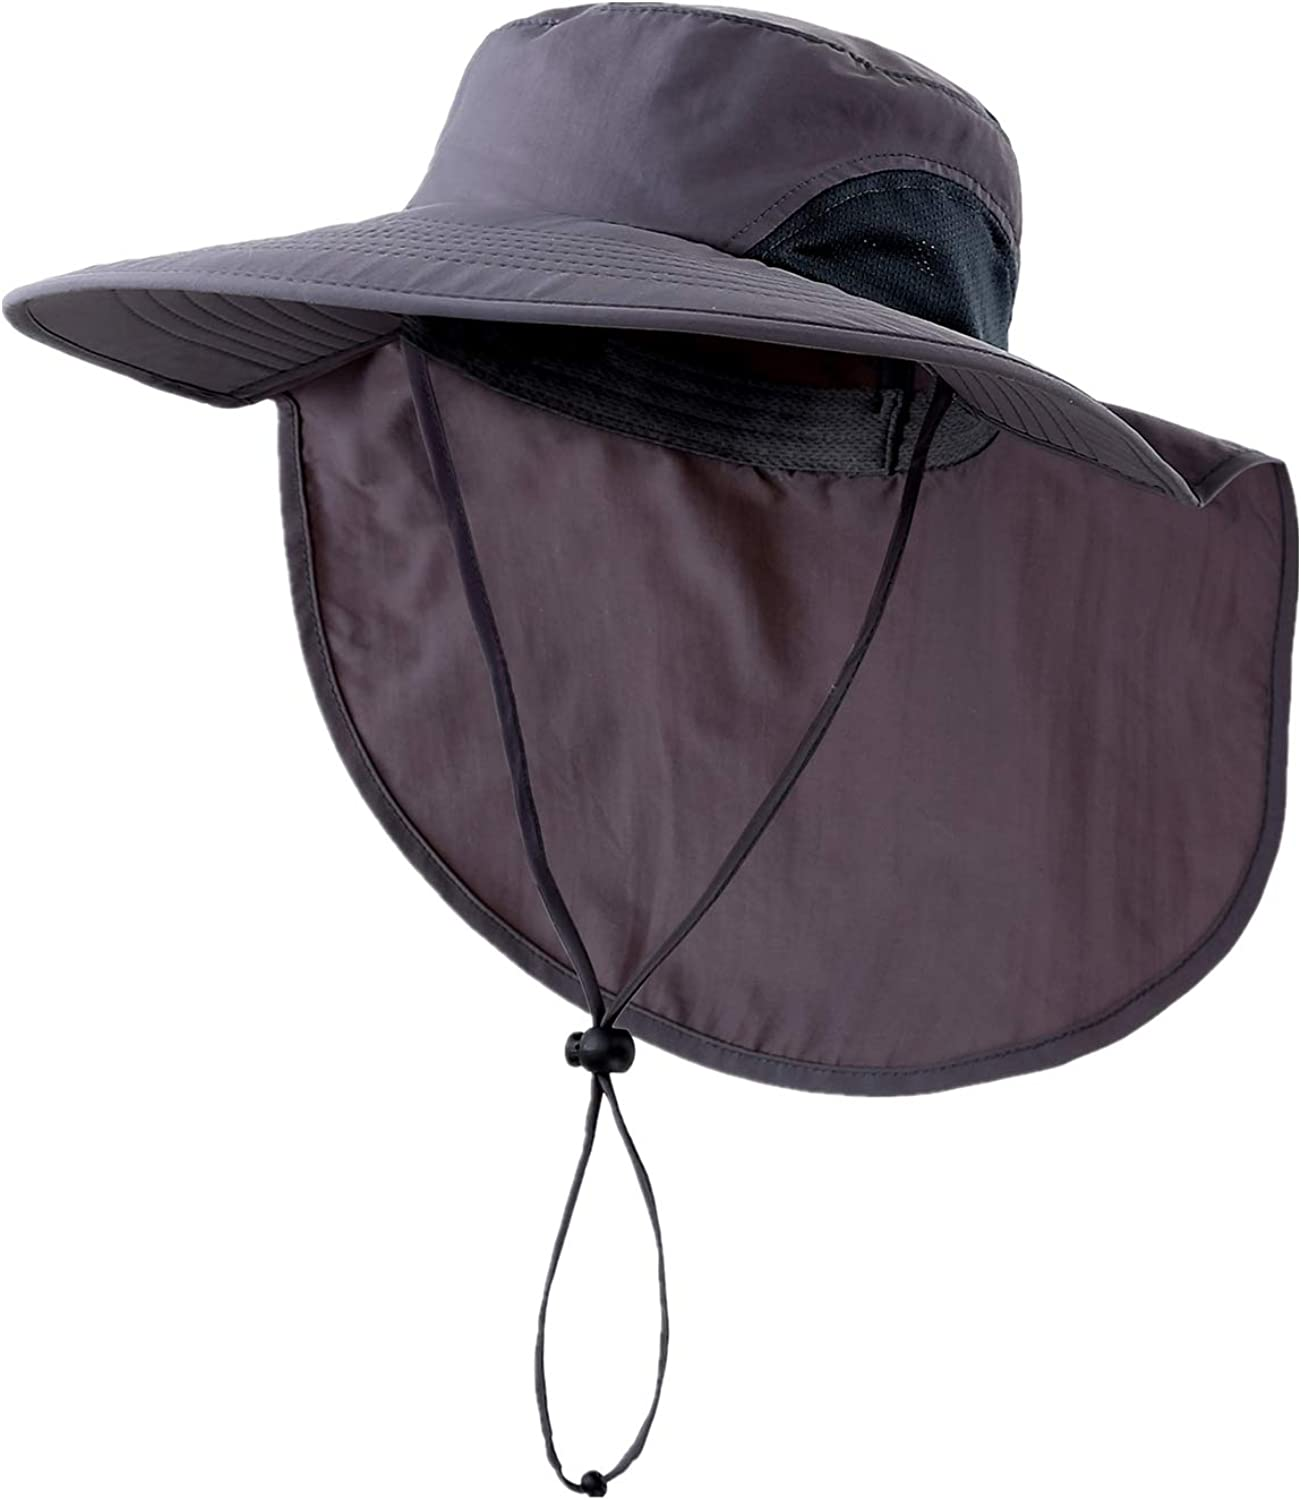 Home Prefer Outdoor UPF50+ Sun Hat Wide Brim Mesh Fishing Hat with Neck Flap